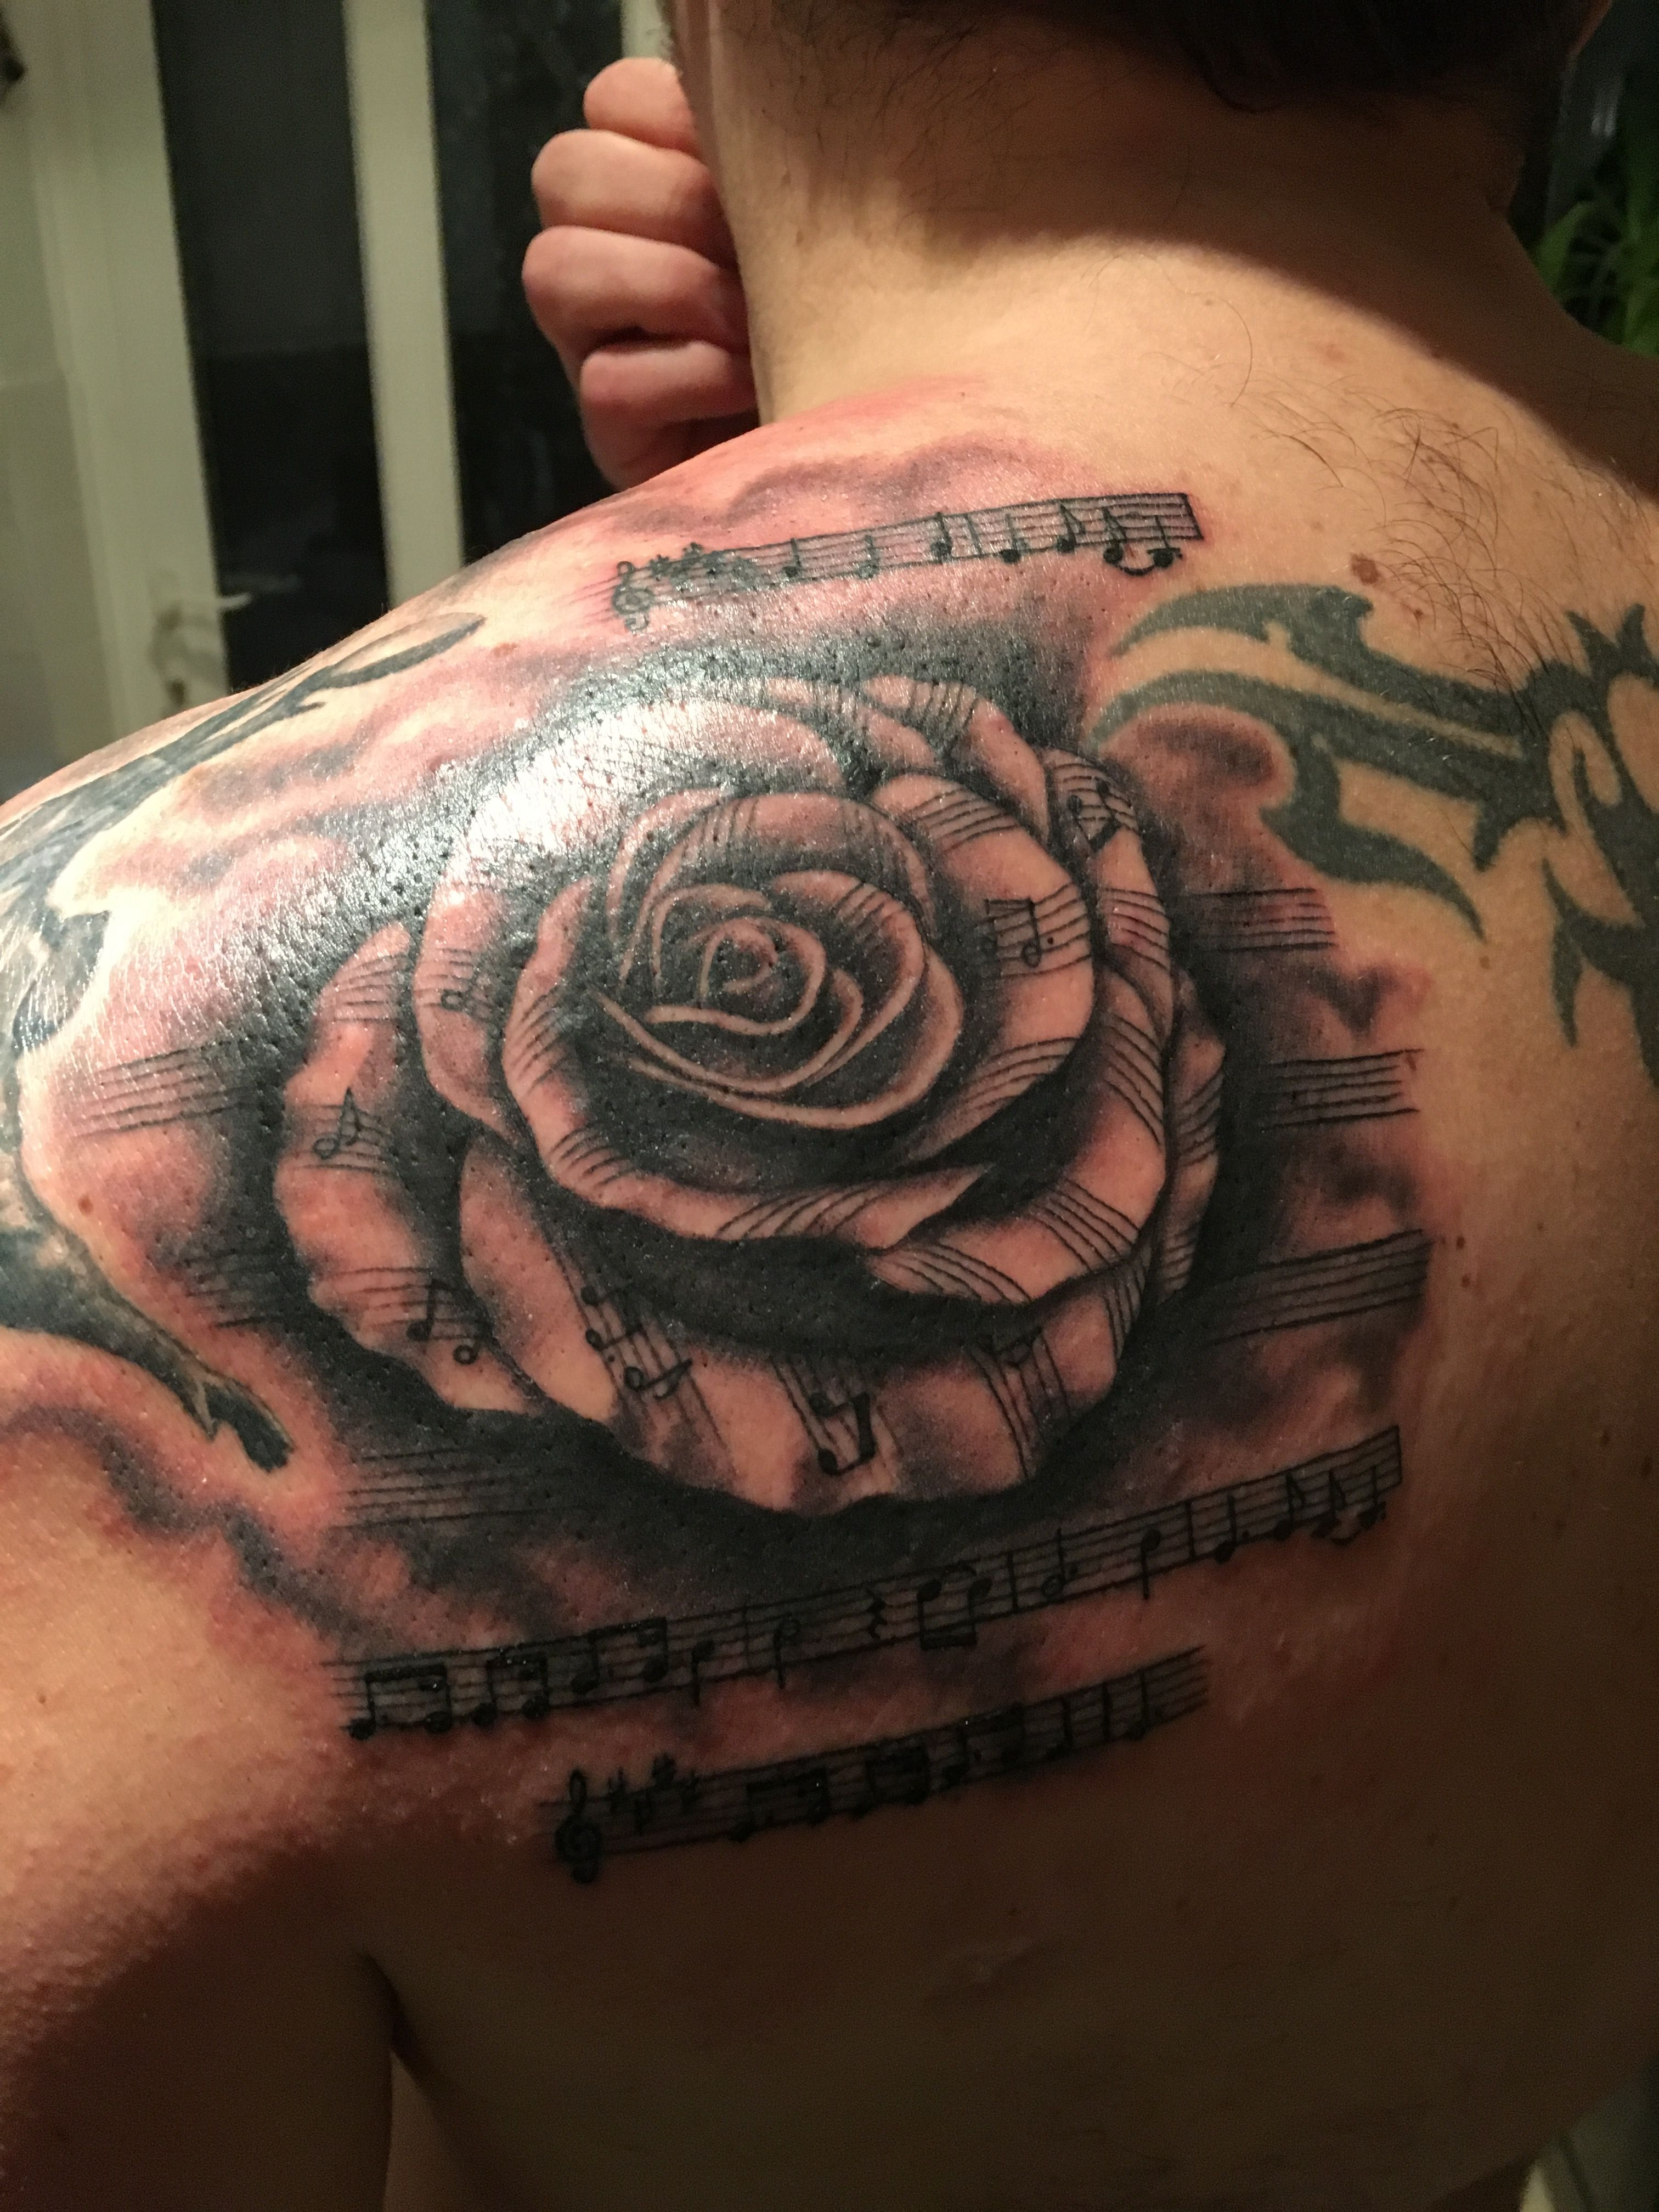 Rugby rose tattoo, swing low